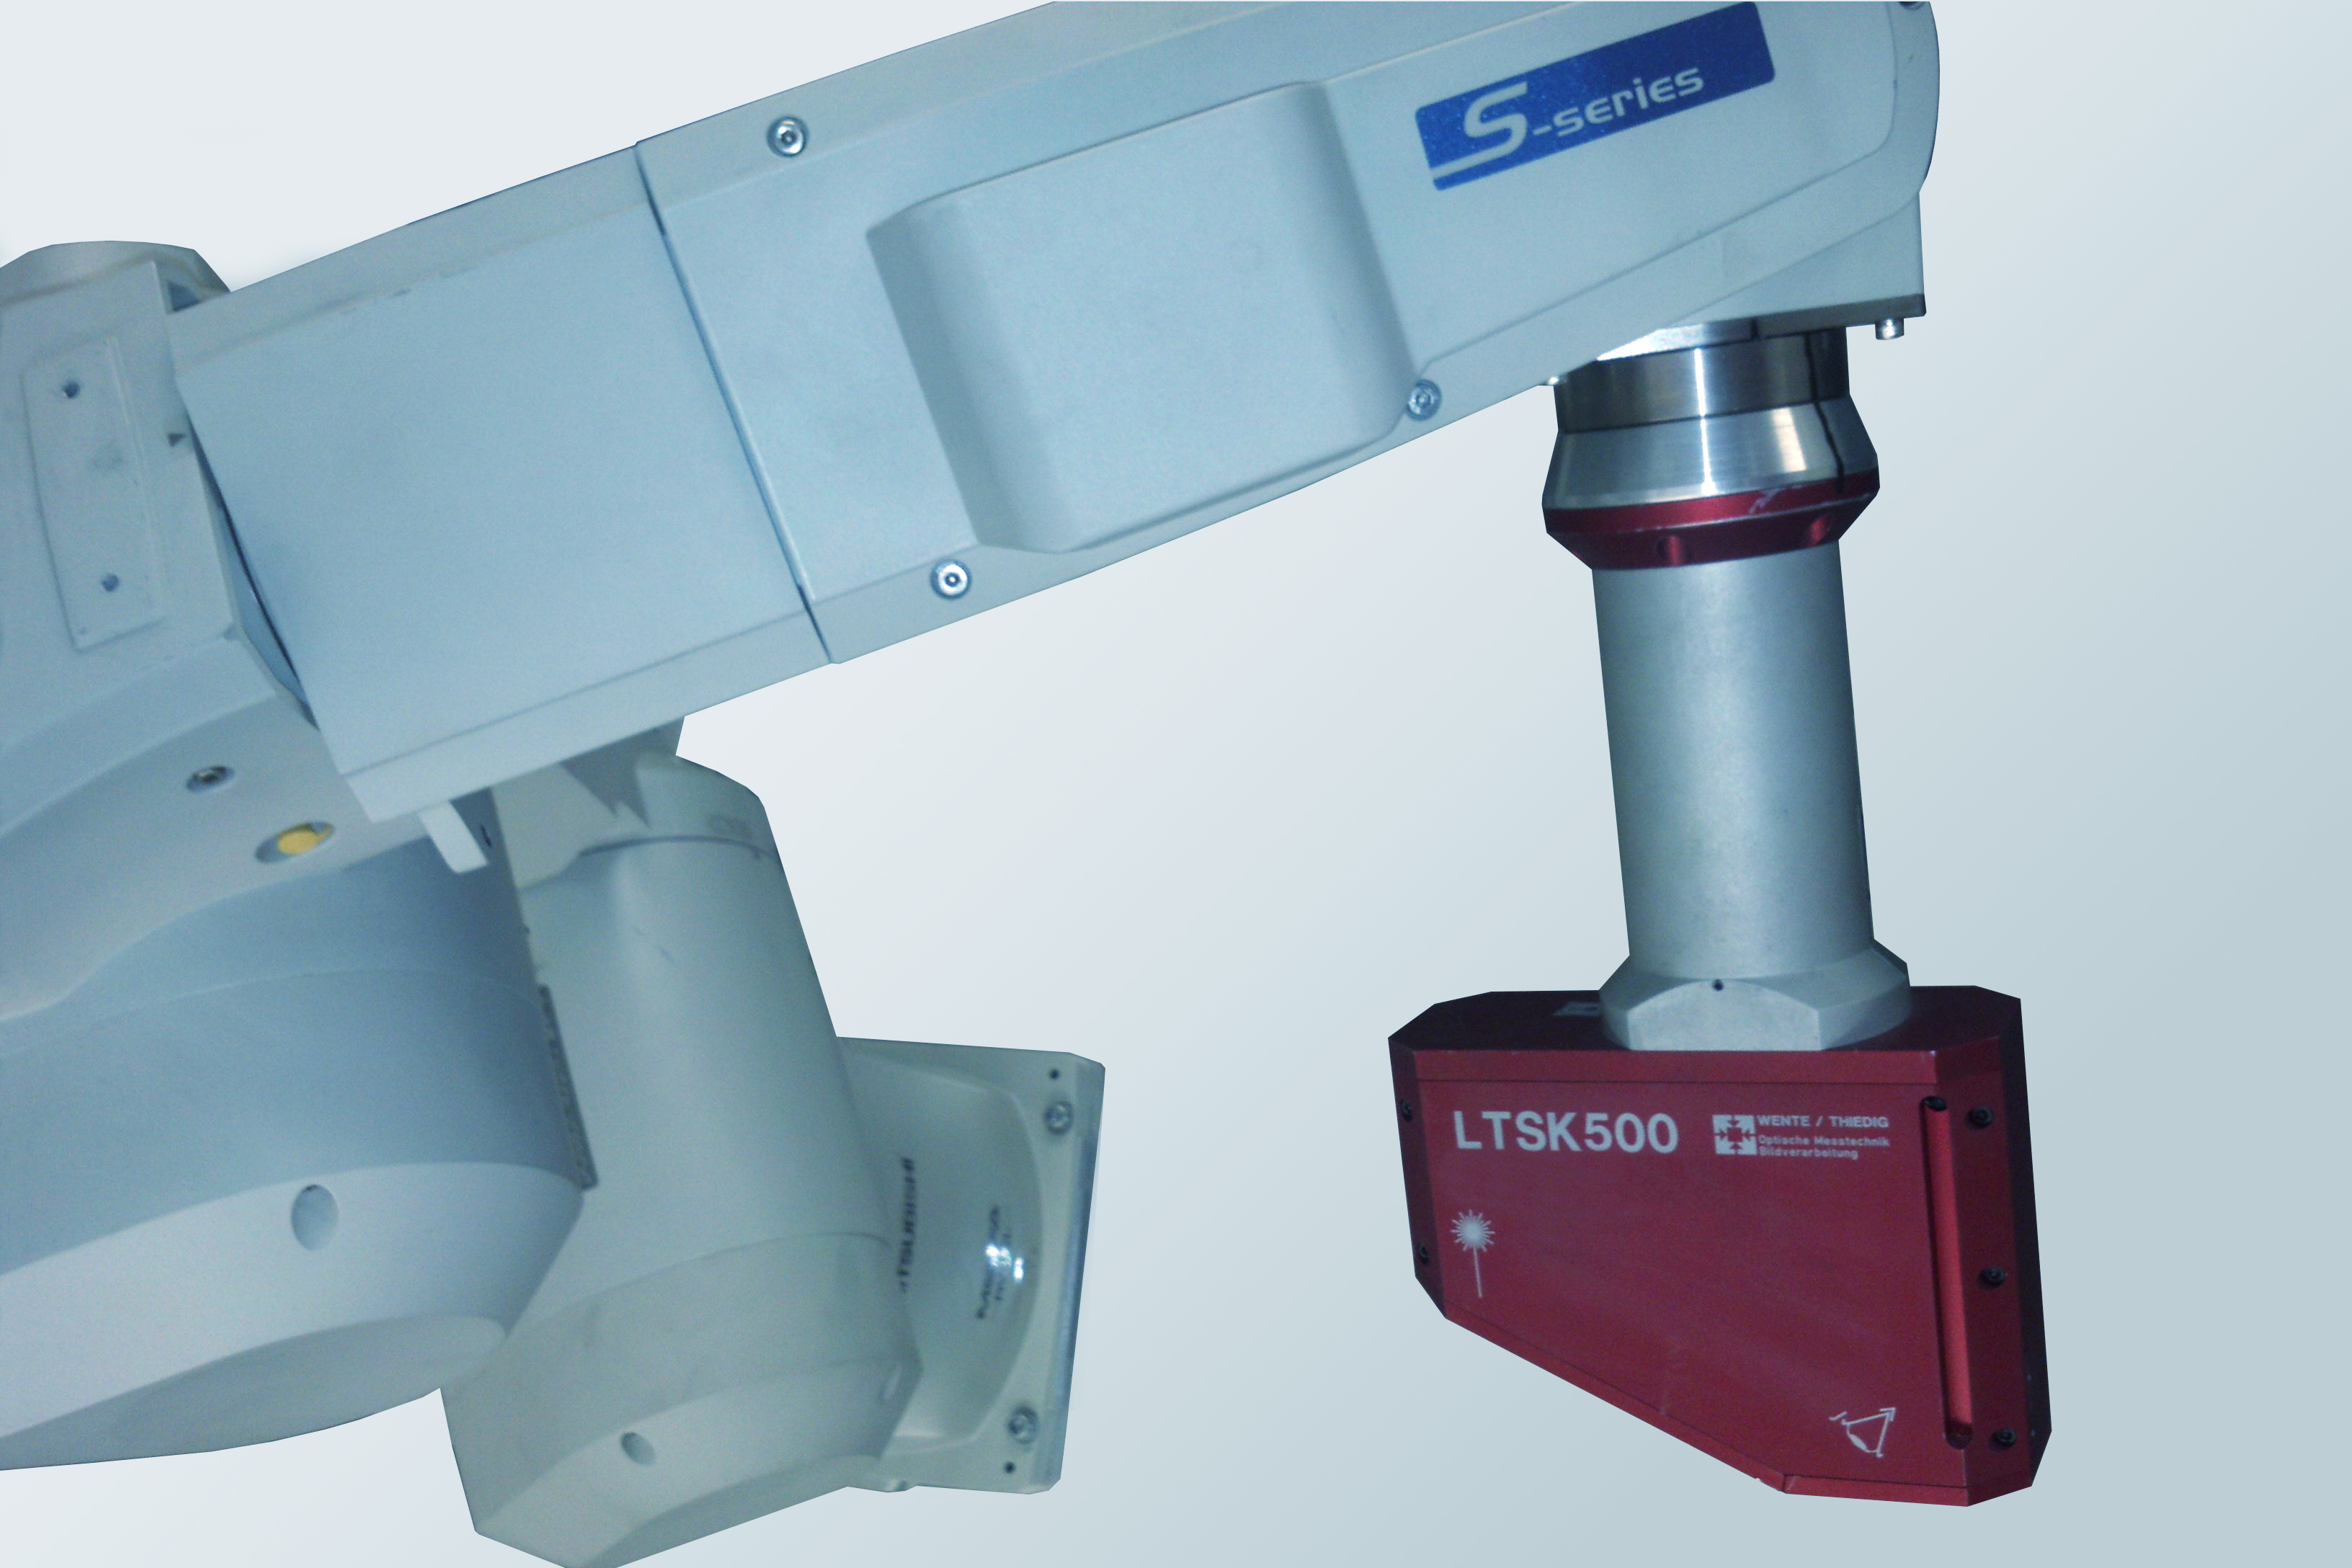 Robot-guided 3D scanning system LTSK500, mounted on industrial robot